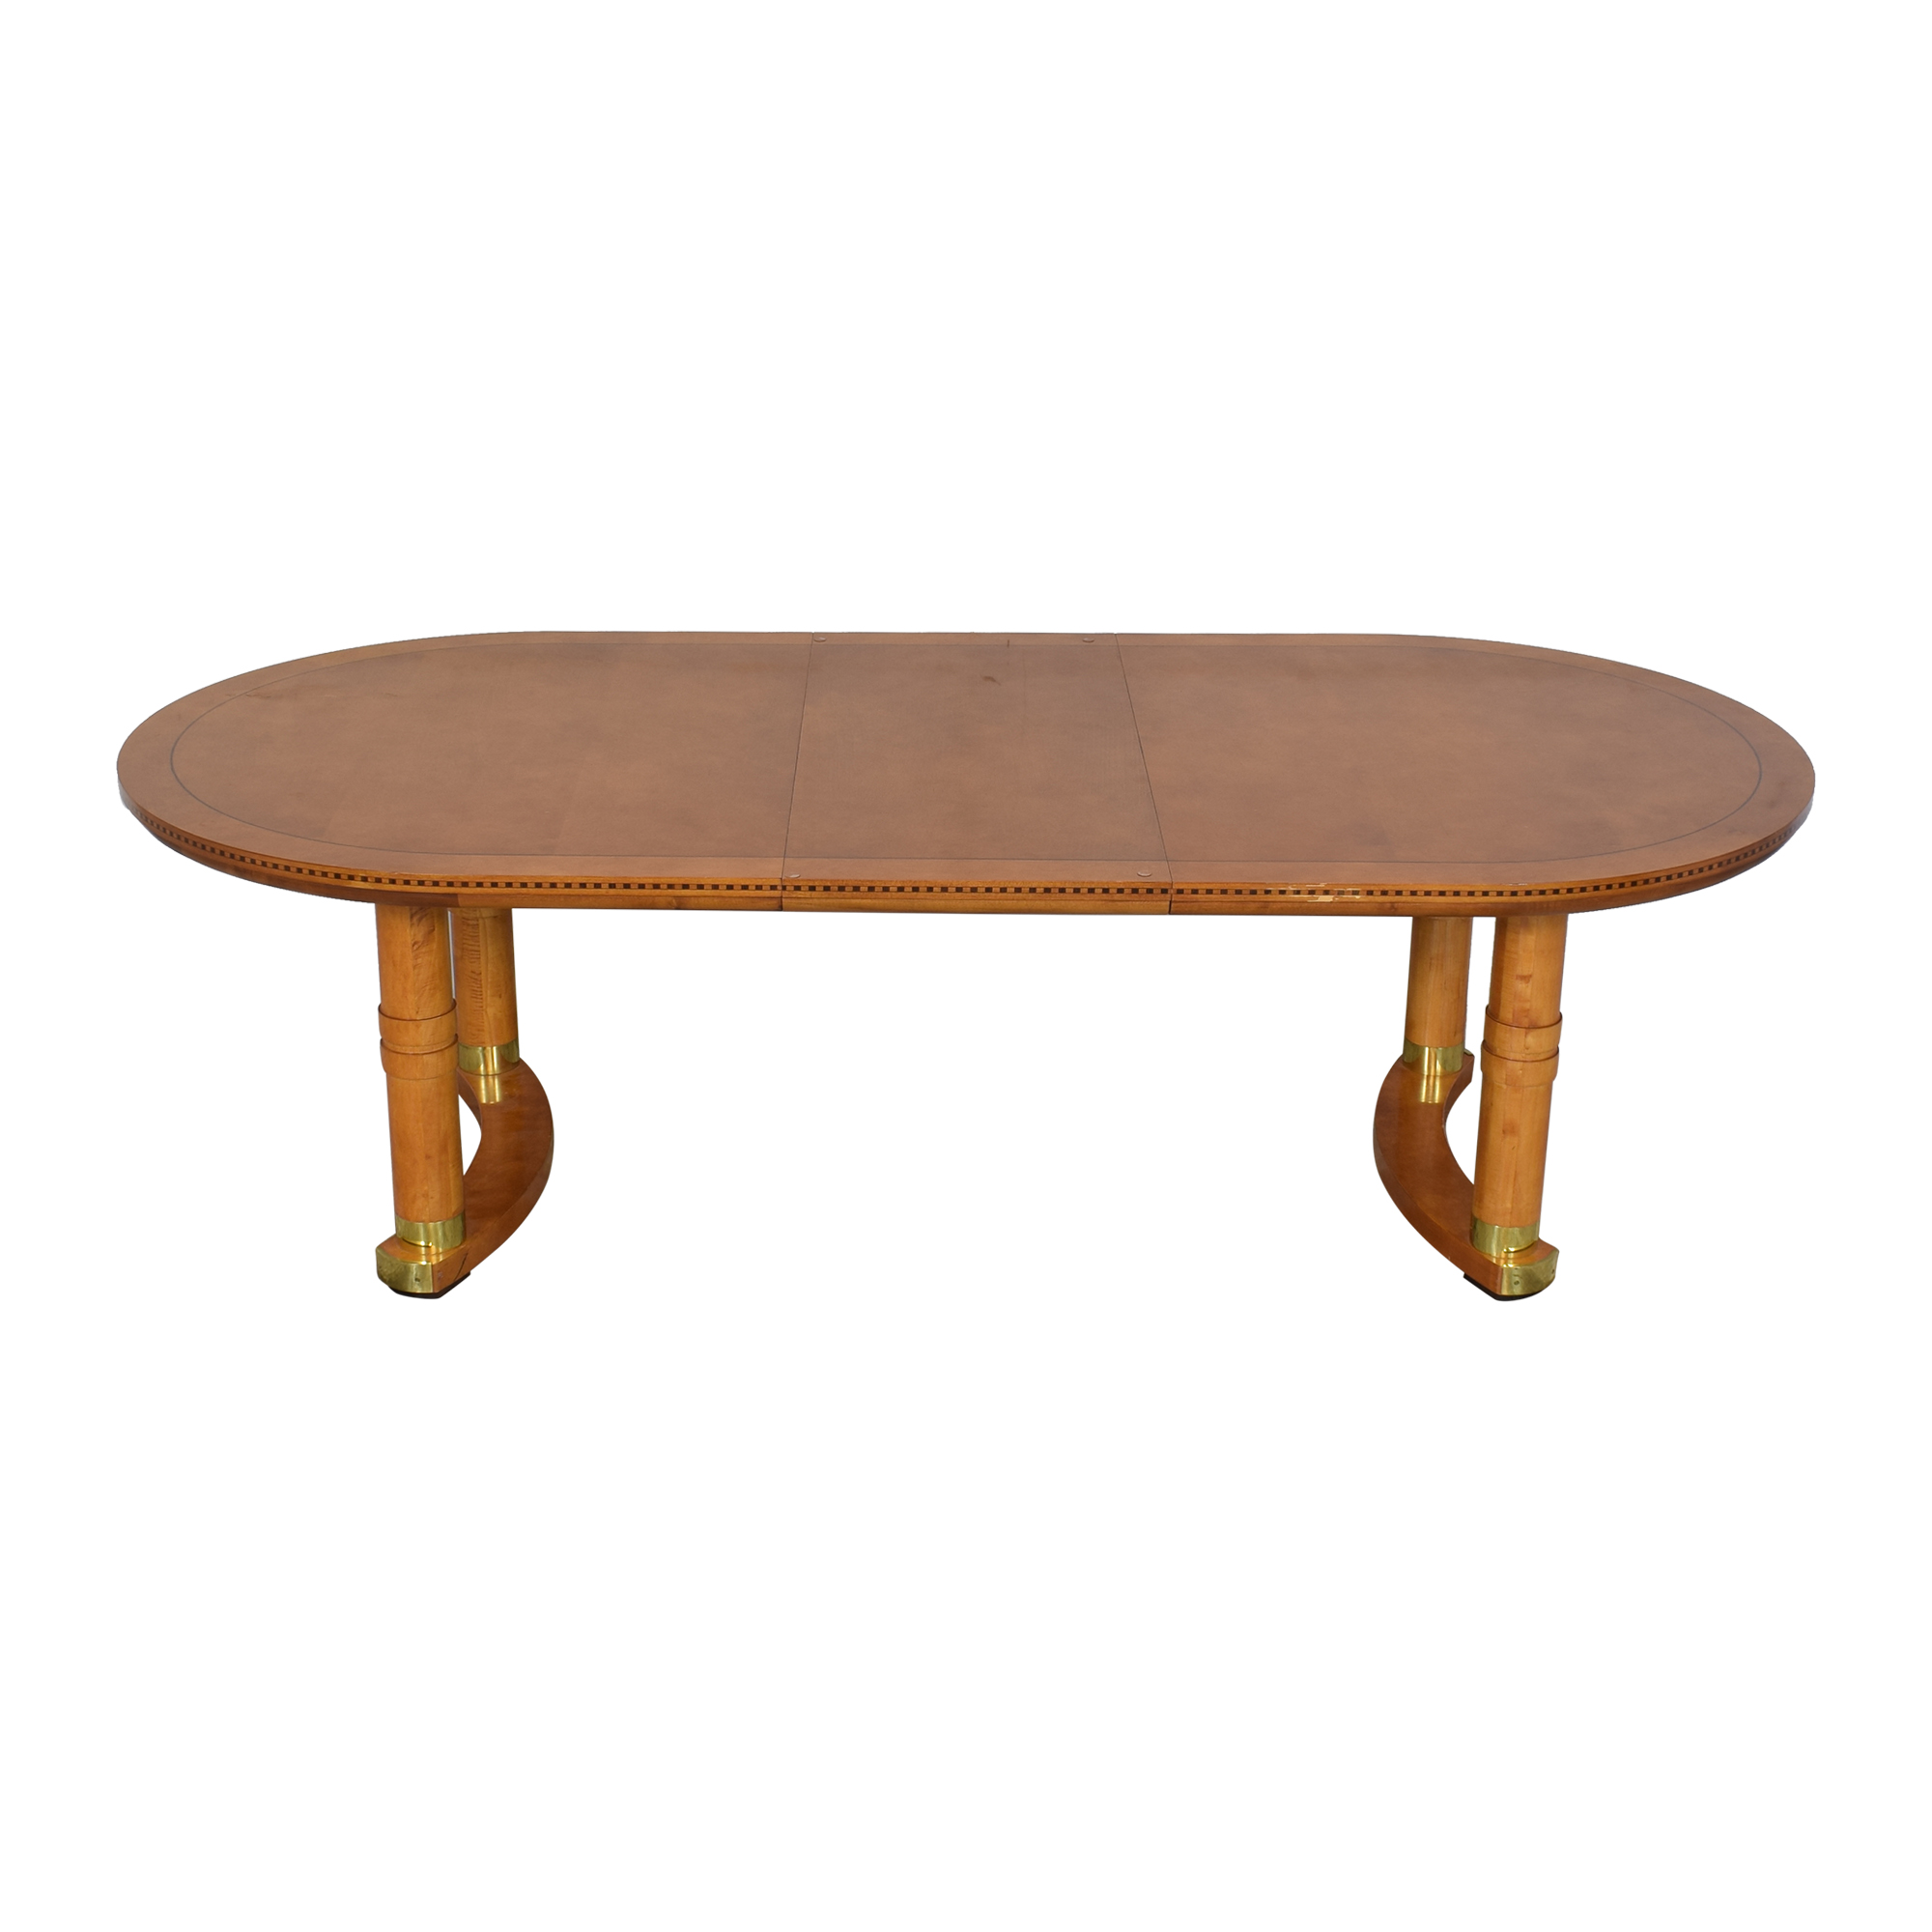 Huffman Koos Extendable Dining Table / Dinner Tables